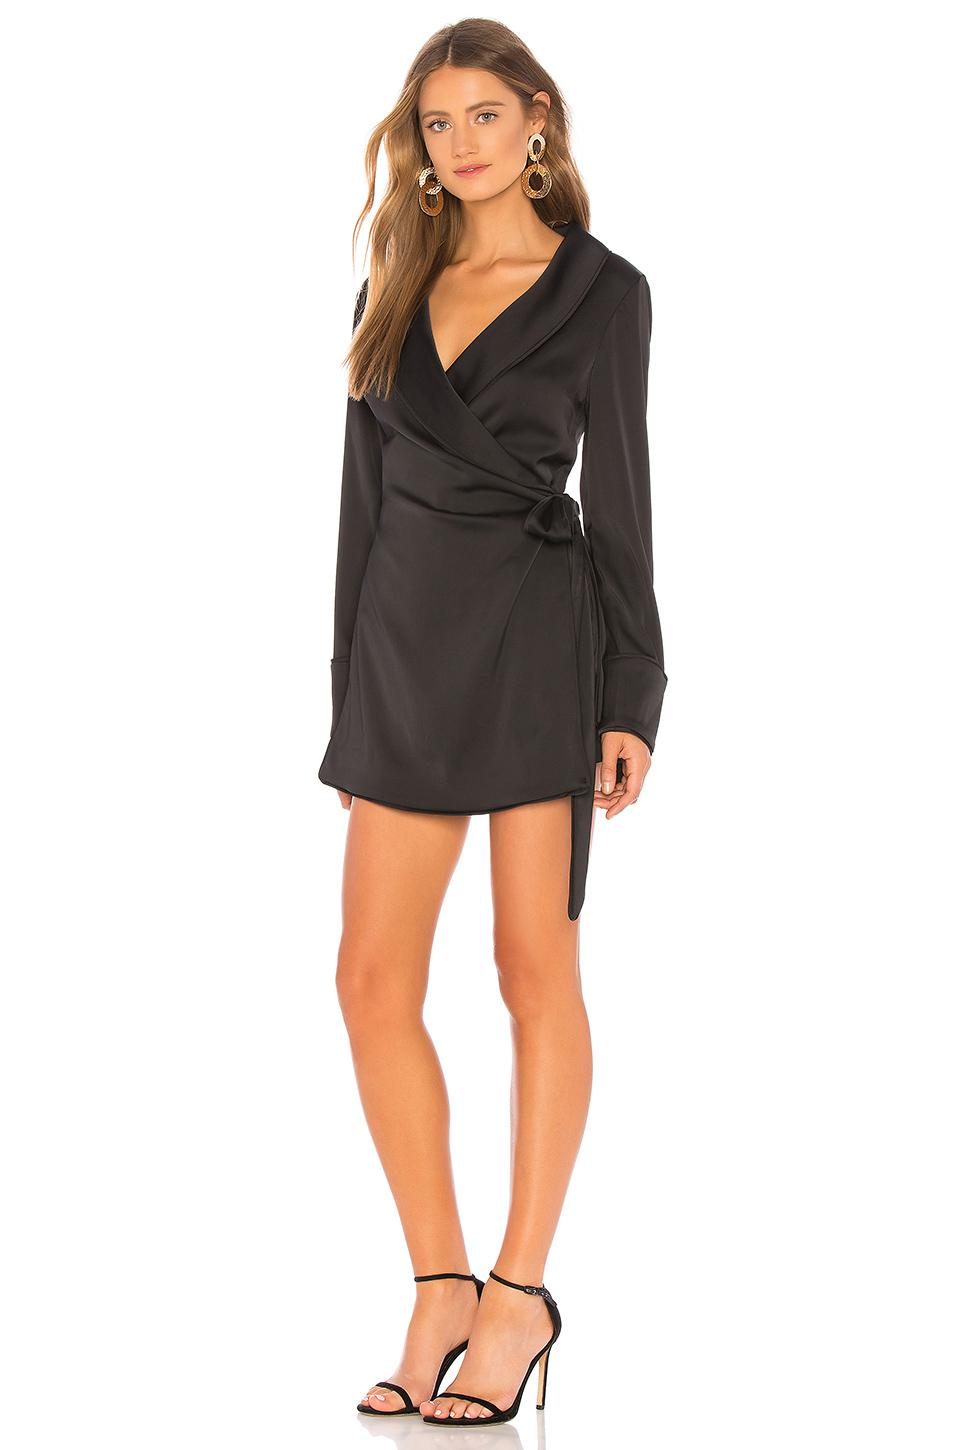 4913cfc00ad Lyst - C meo Collective Simple Things Playsuit in Black